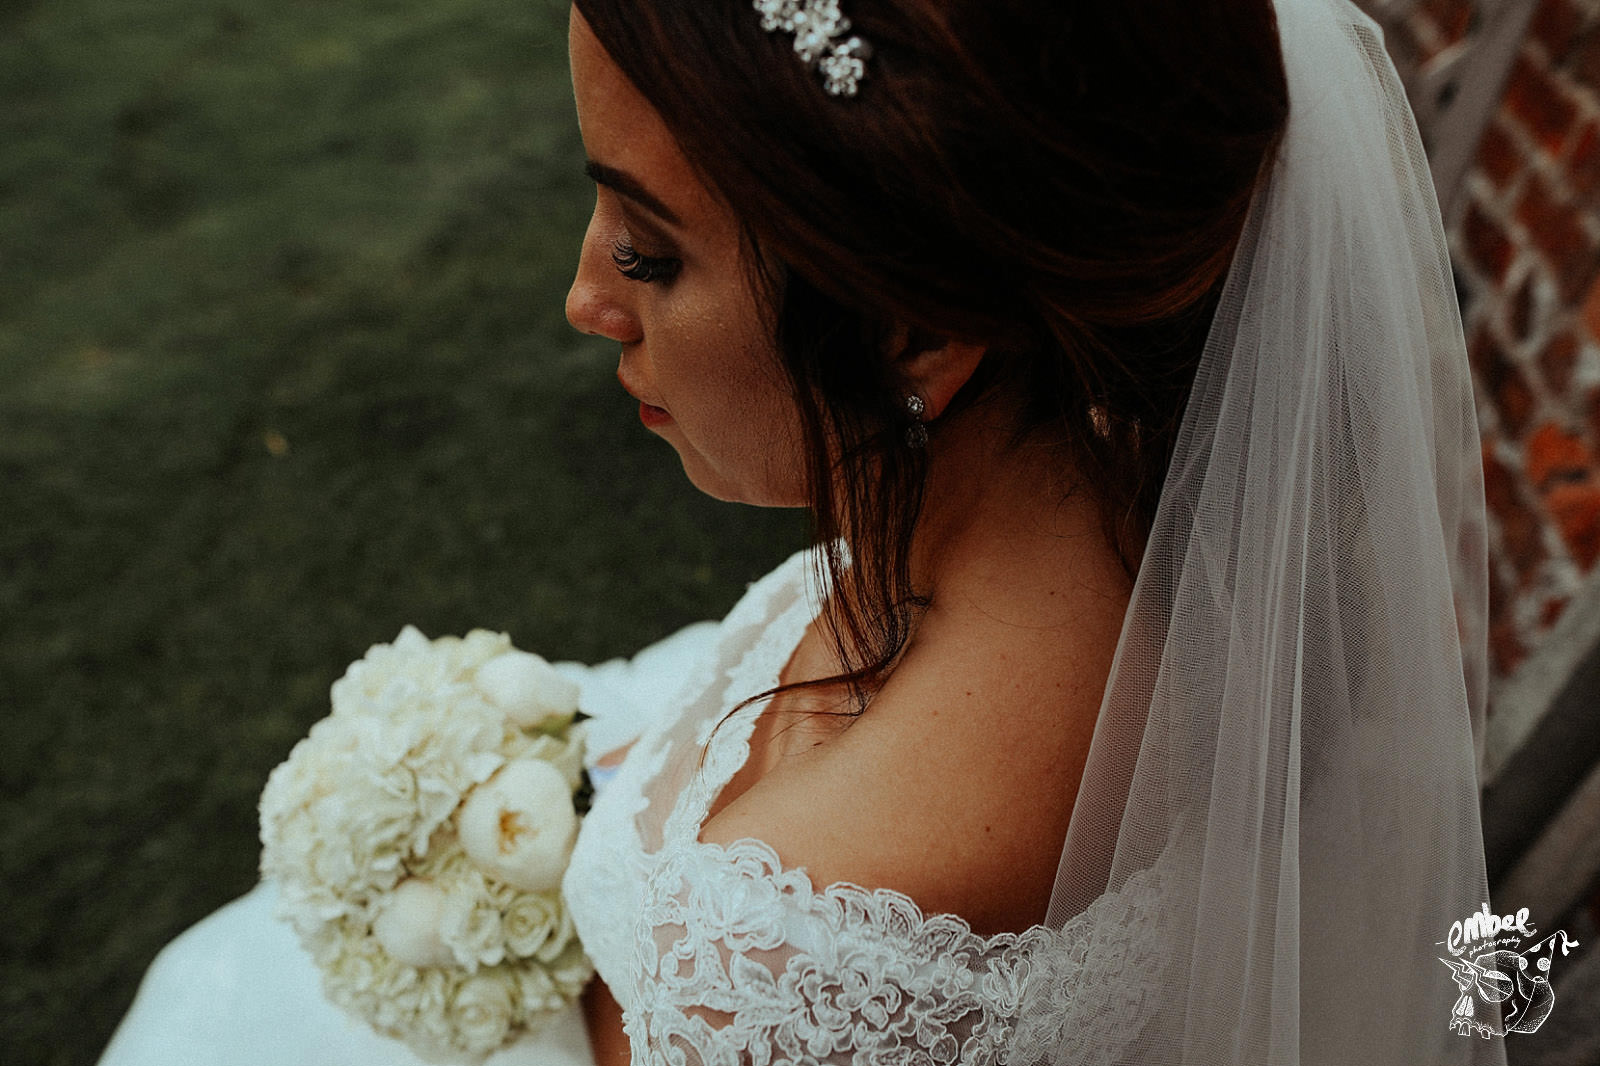 bride looking down at her flowers made of white roses